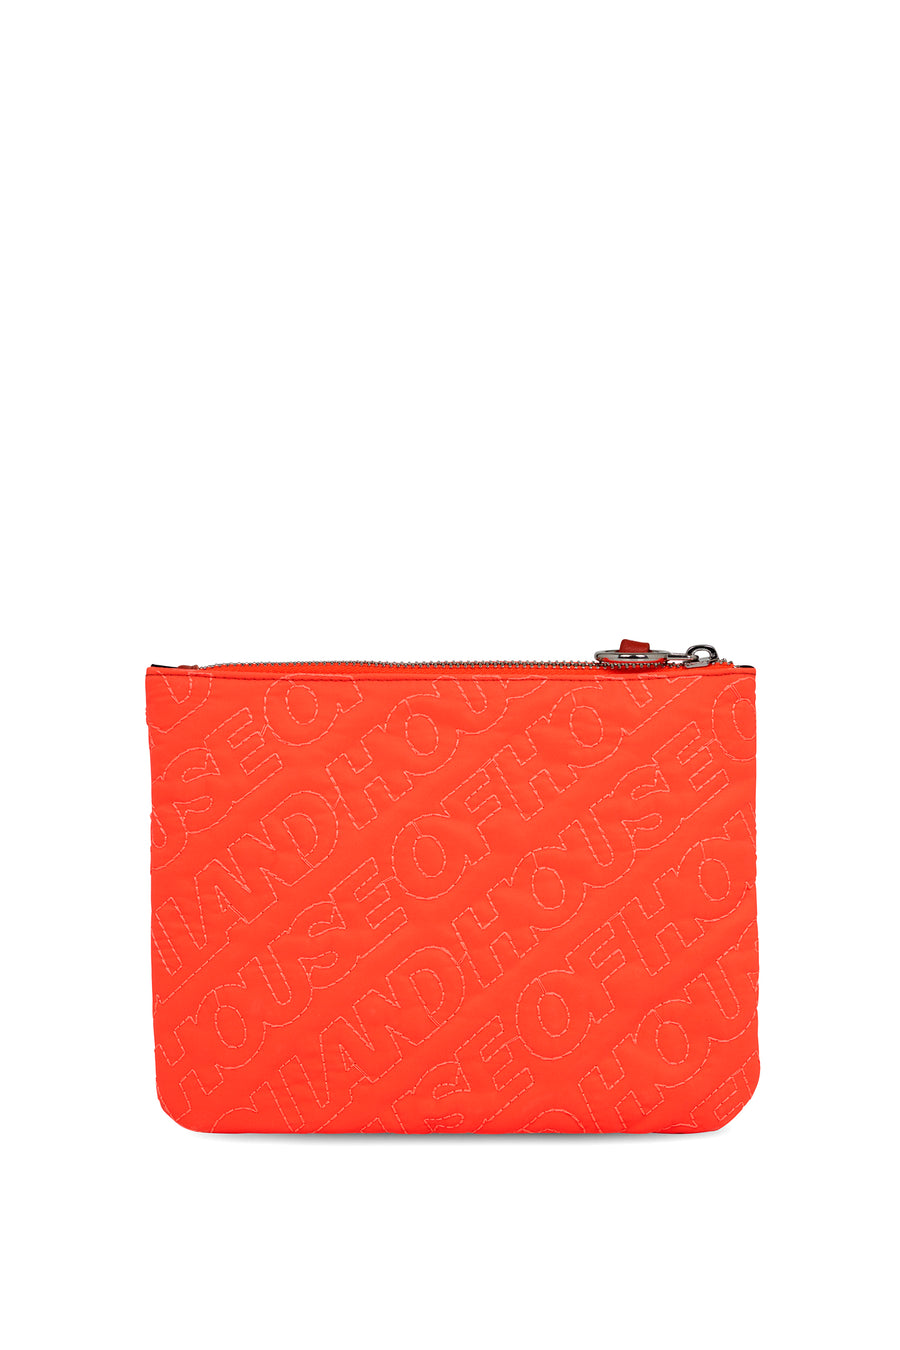 'HOH' Neon Orange Embroidered Pouch